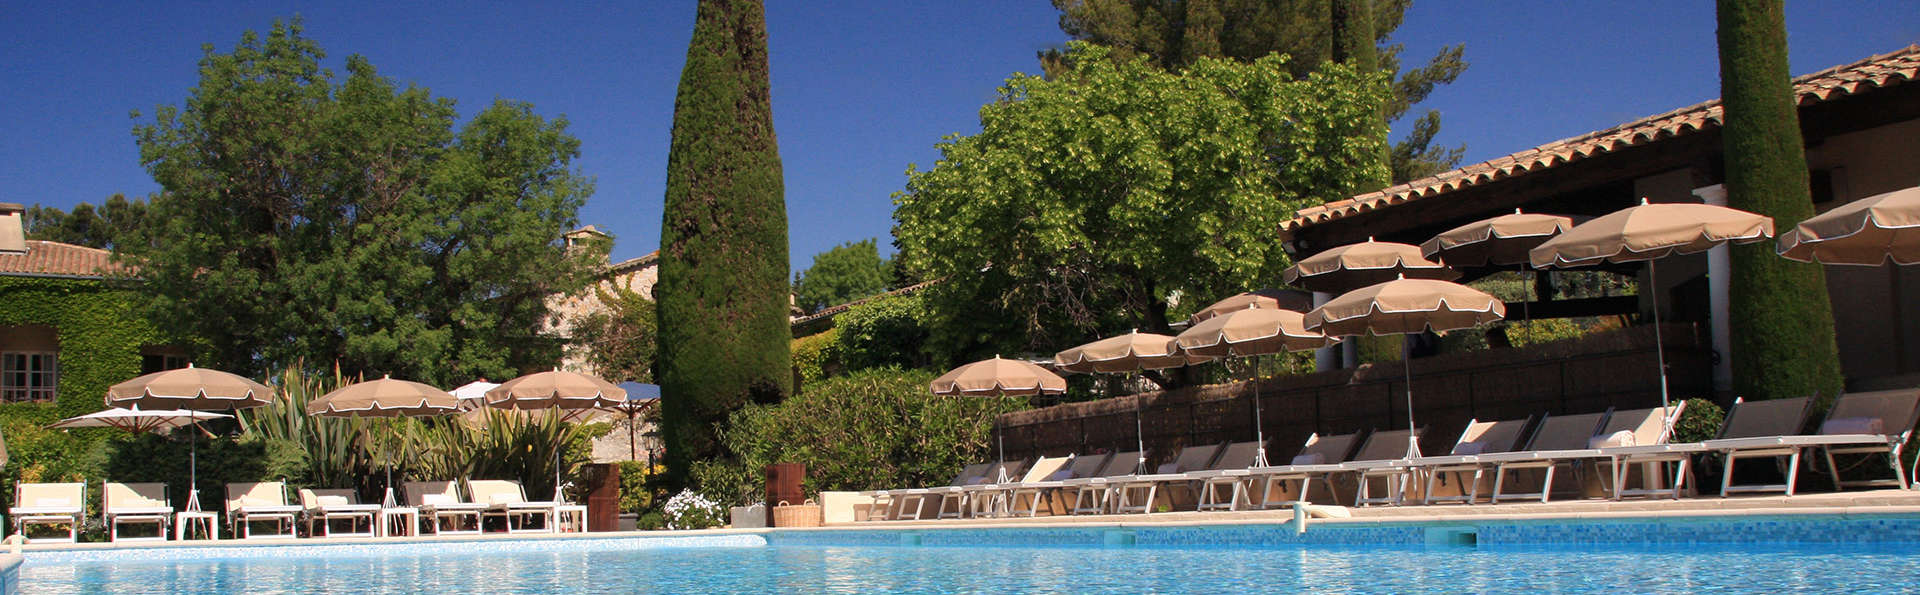 Hôtel de Mougins  - EDIT_pool2.jpg